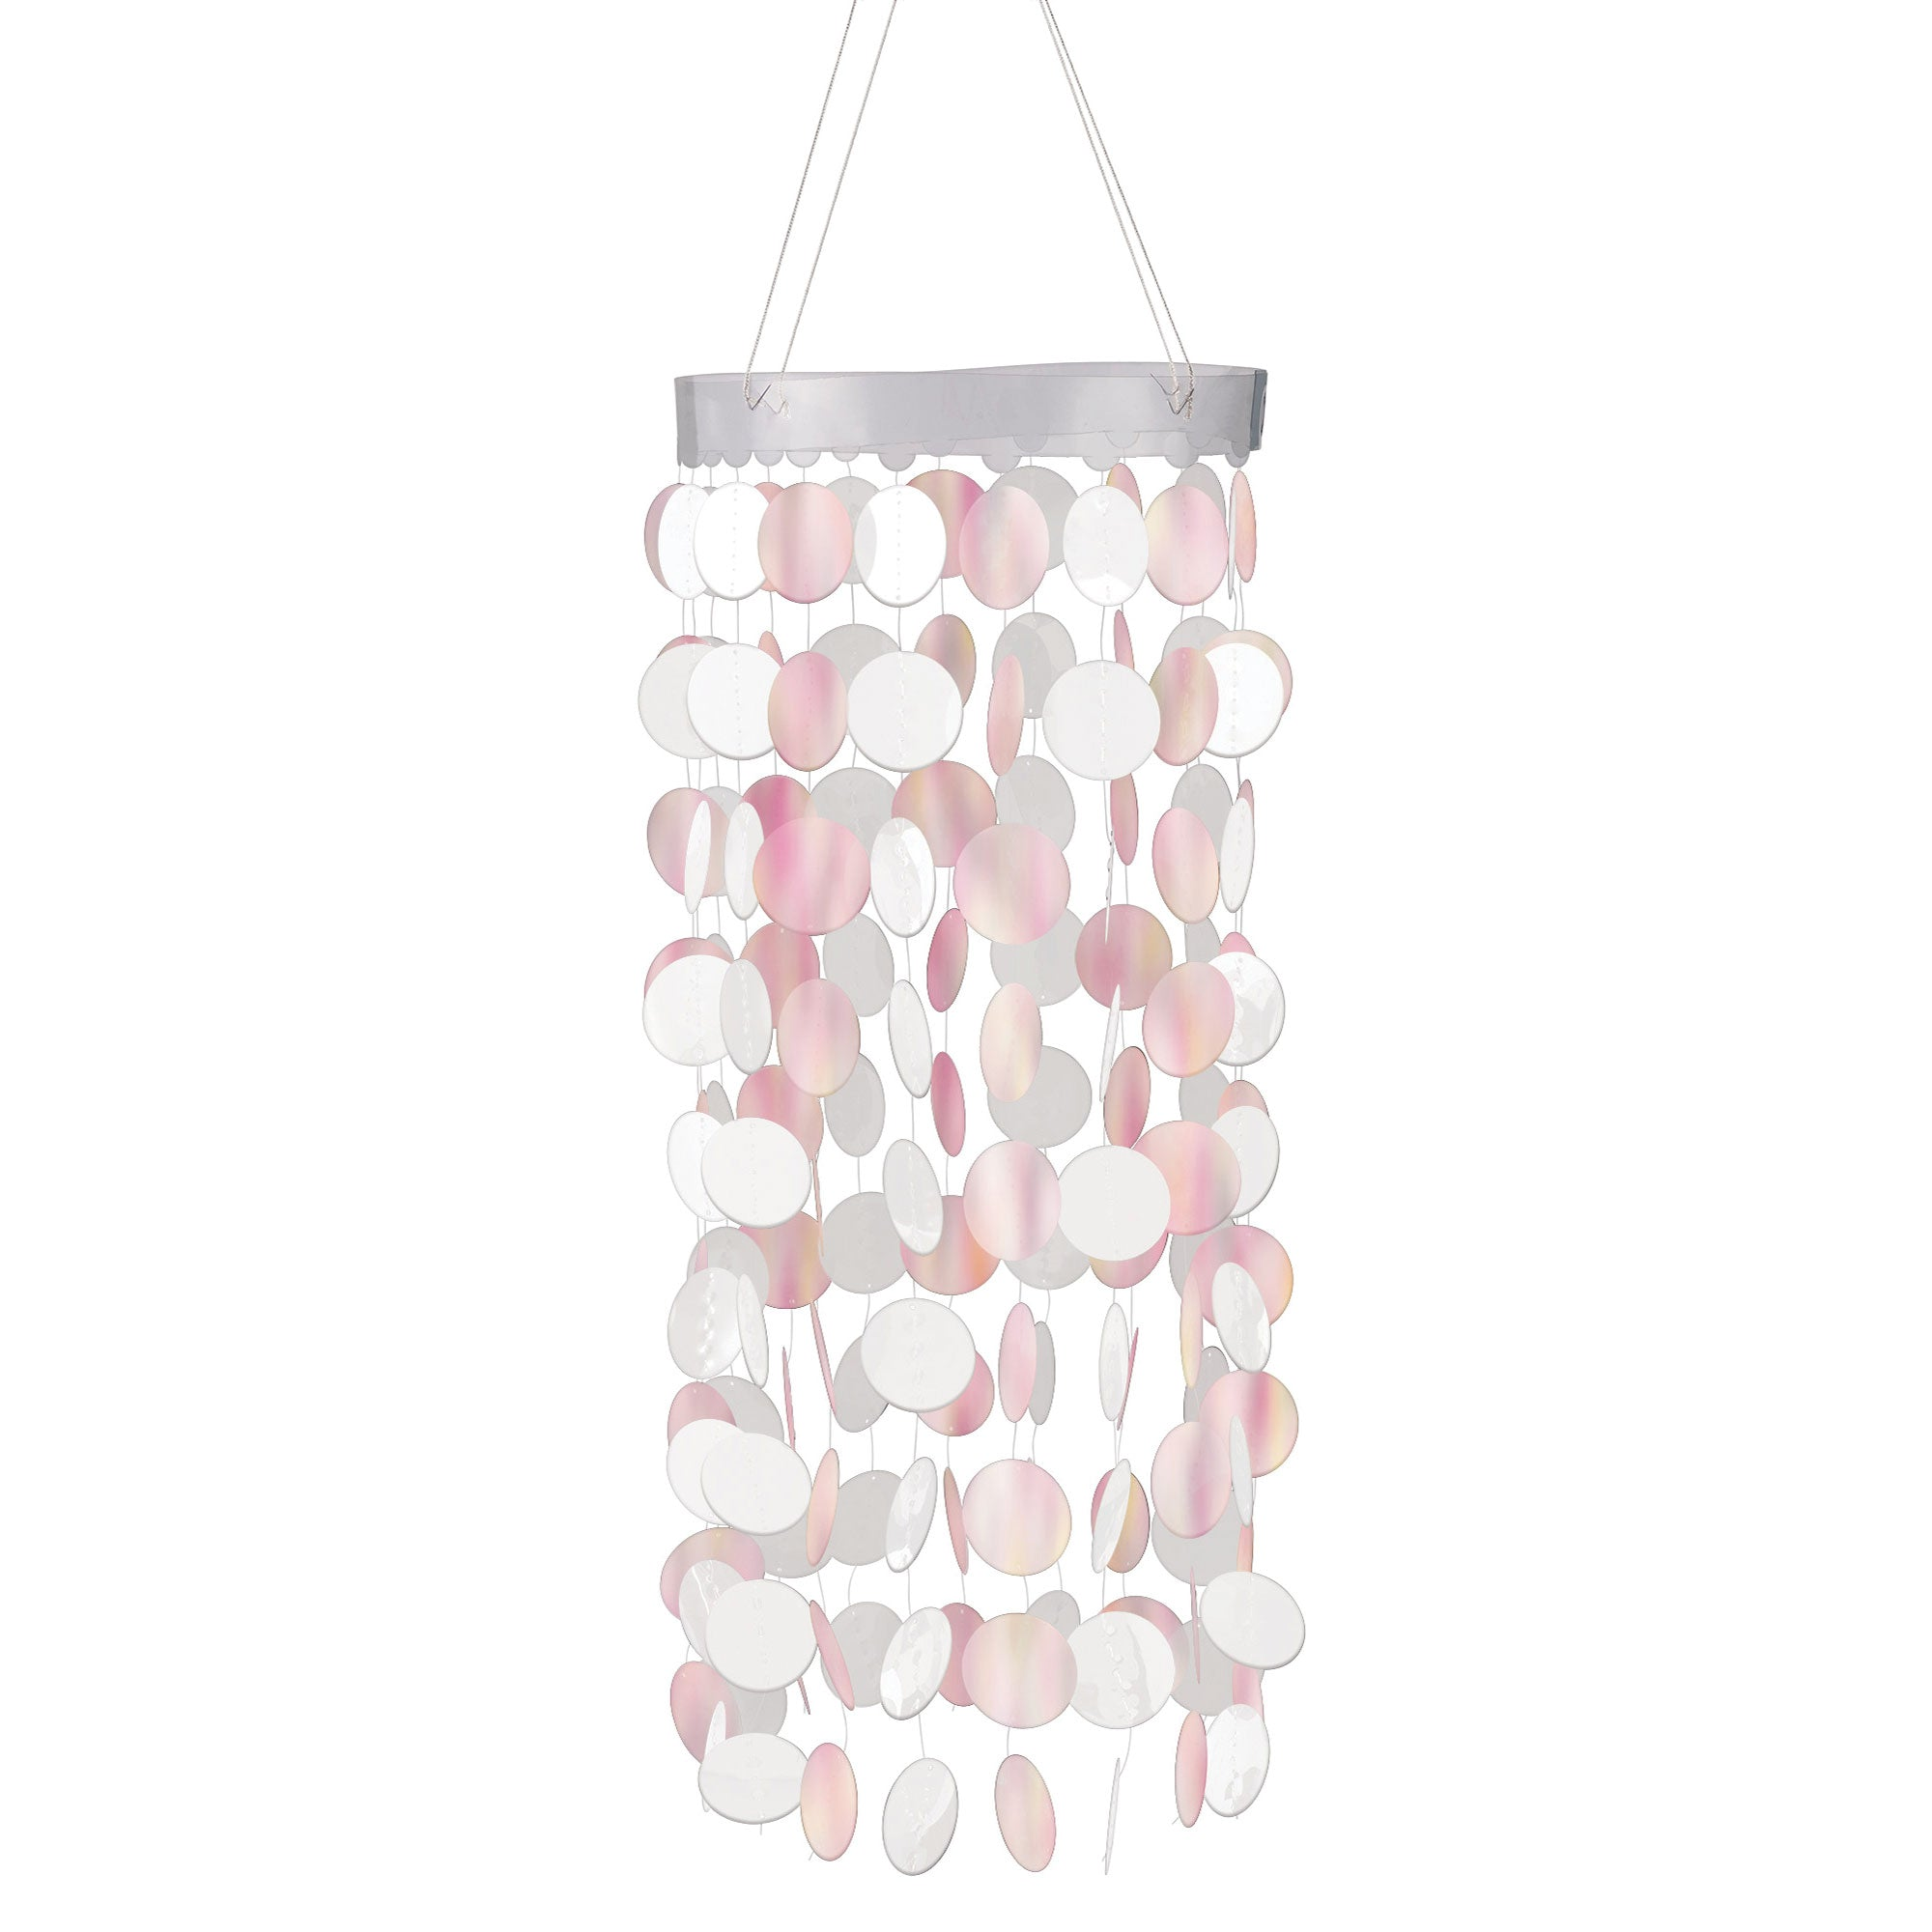 Hanging Chandelier Decoration White Iridescent Circles - Party Savers